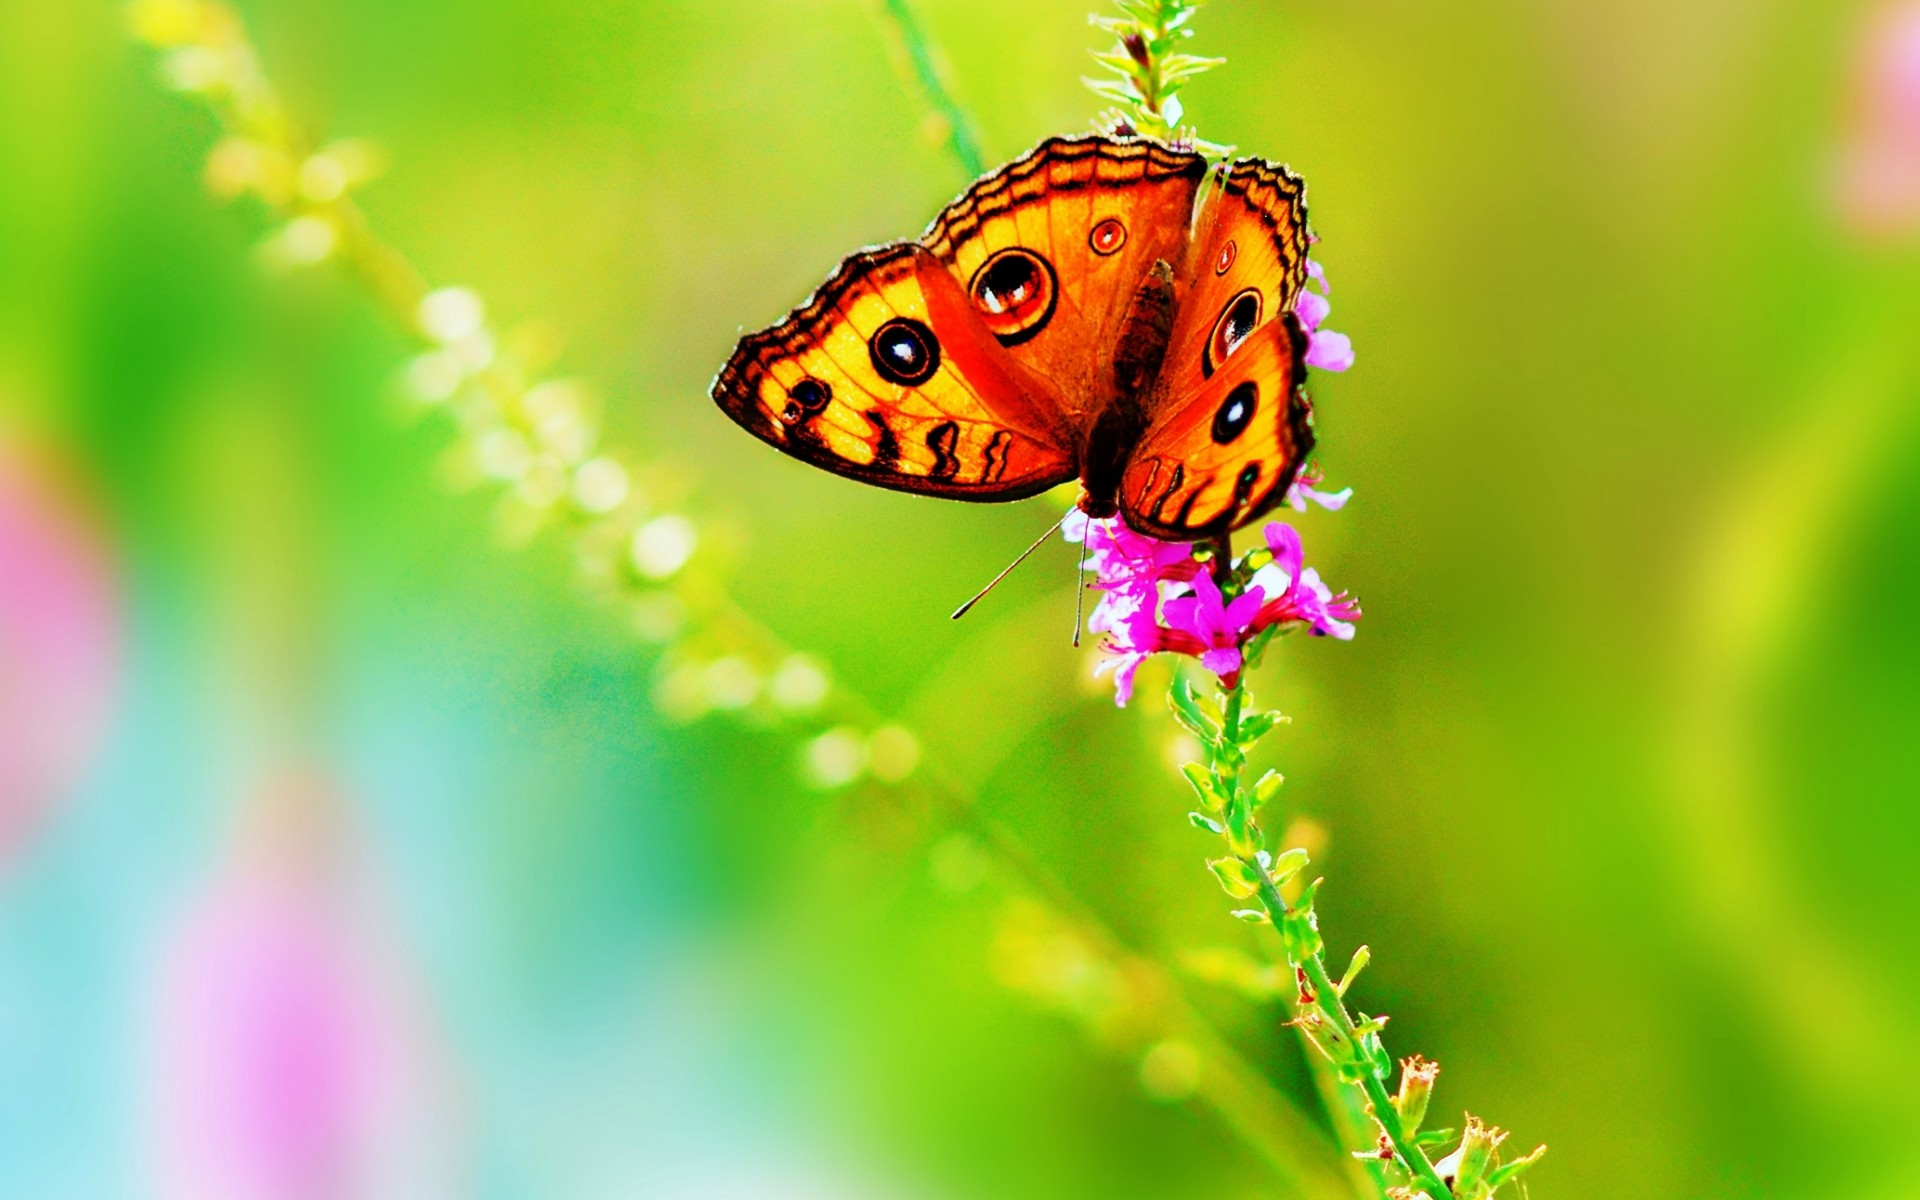 butterfly images wallpapers (36 wallpapers) – adorable wallpapers